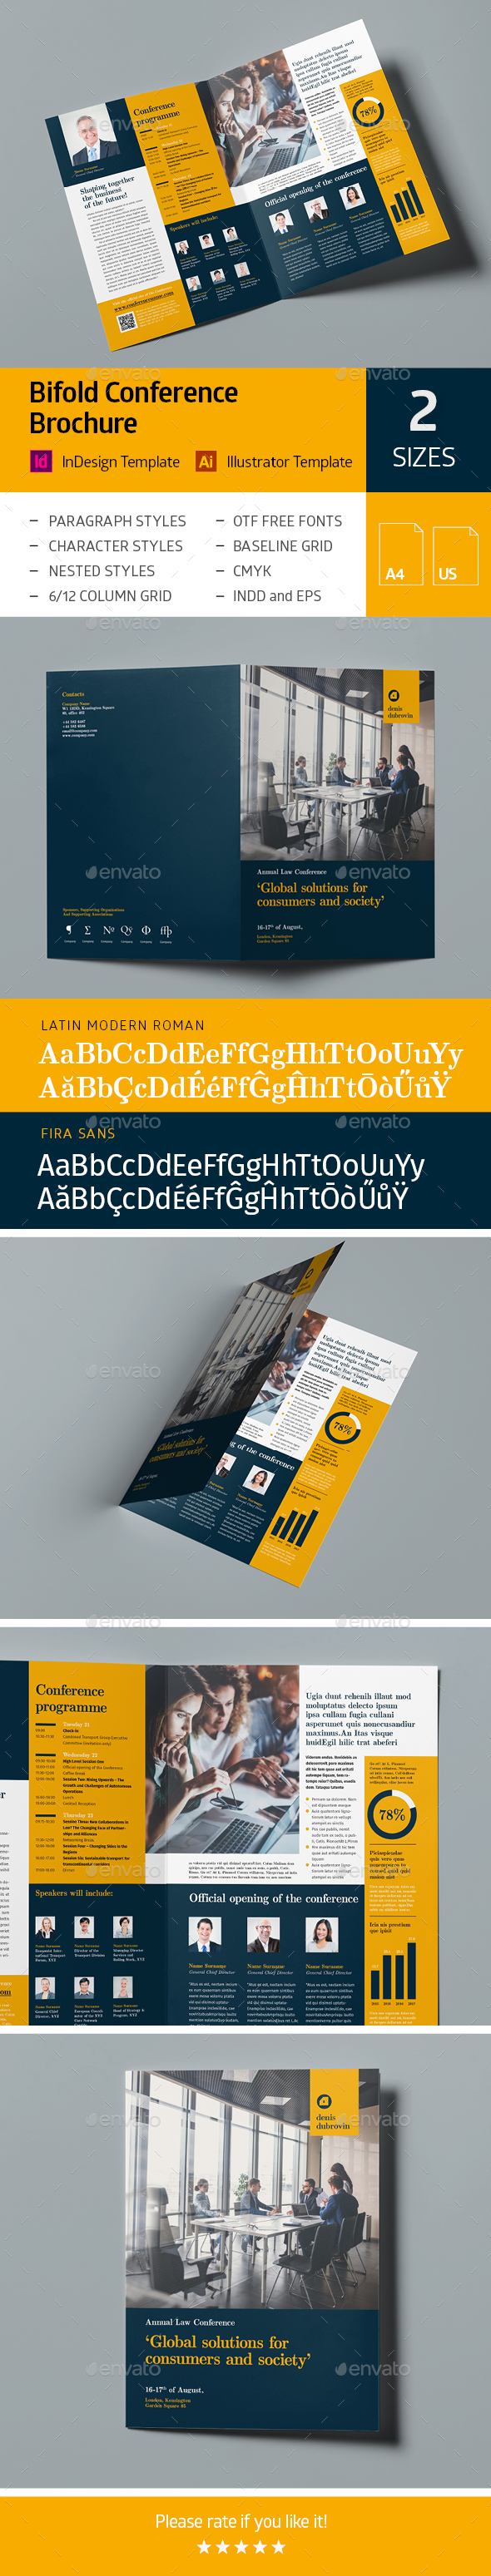 GraphicRiver Bifold Conference Brochure 21128326